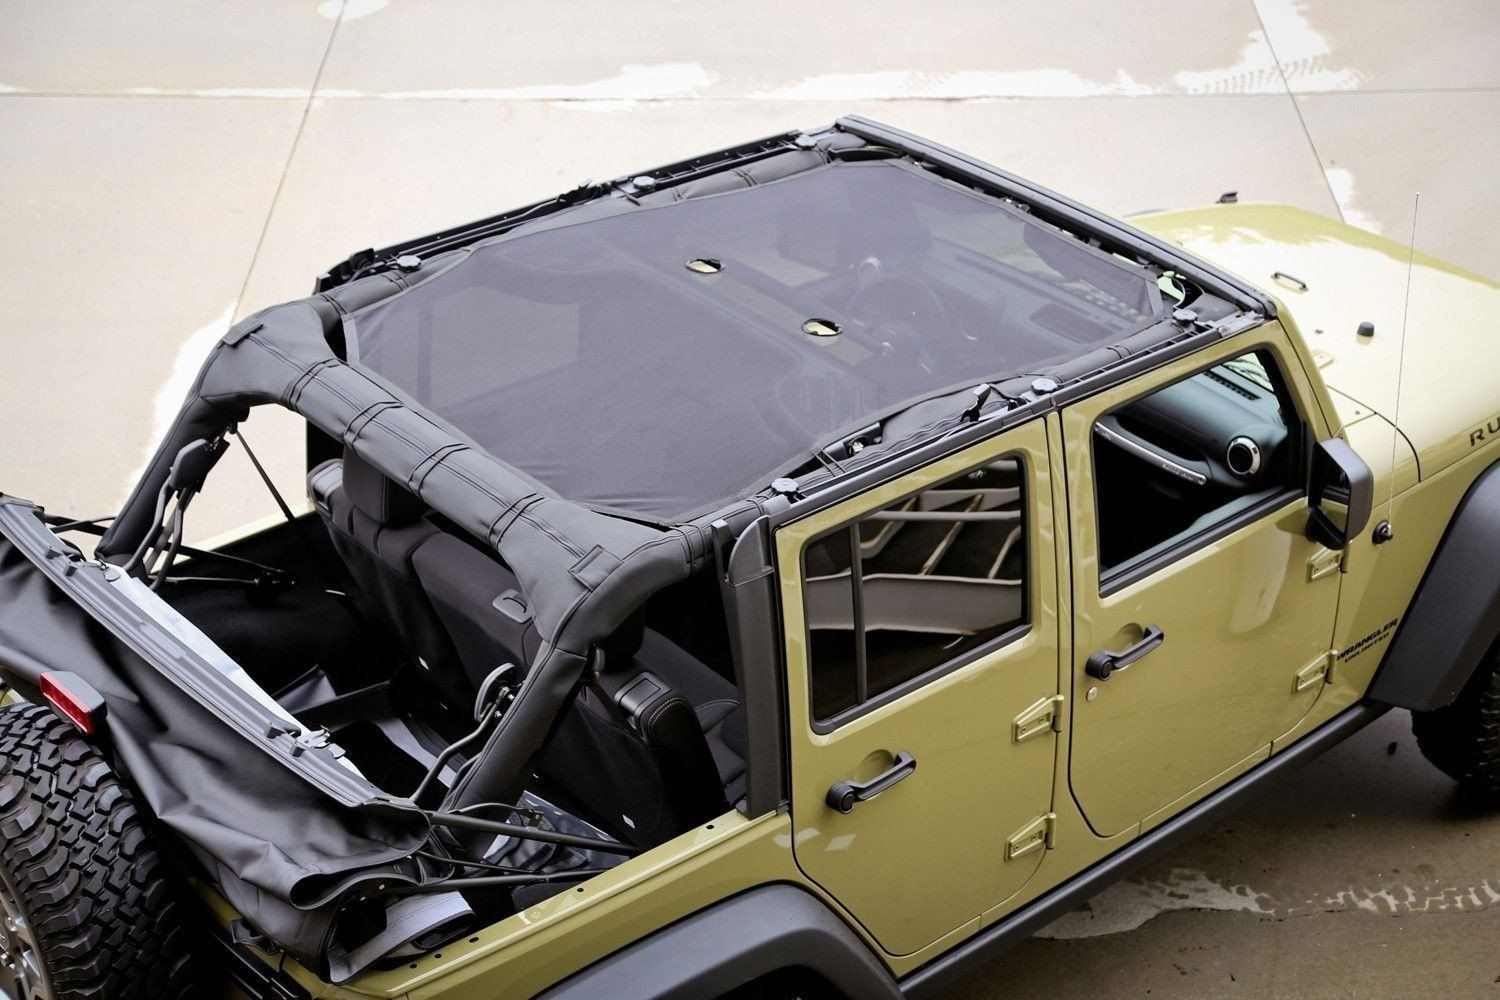 Get That Open Air And Top Down Feeling You Want While Being Protected From Harsh Sunlight Http Ow Ly Jeep Wrangler Jeep Wrangler Jk 4 Door Jeep Wrangler